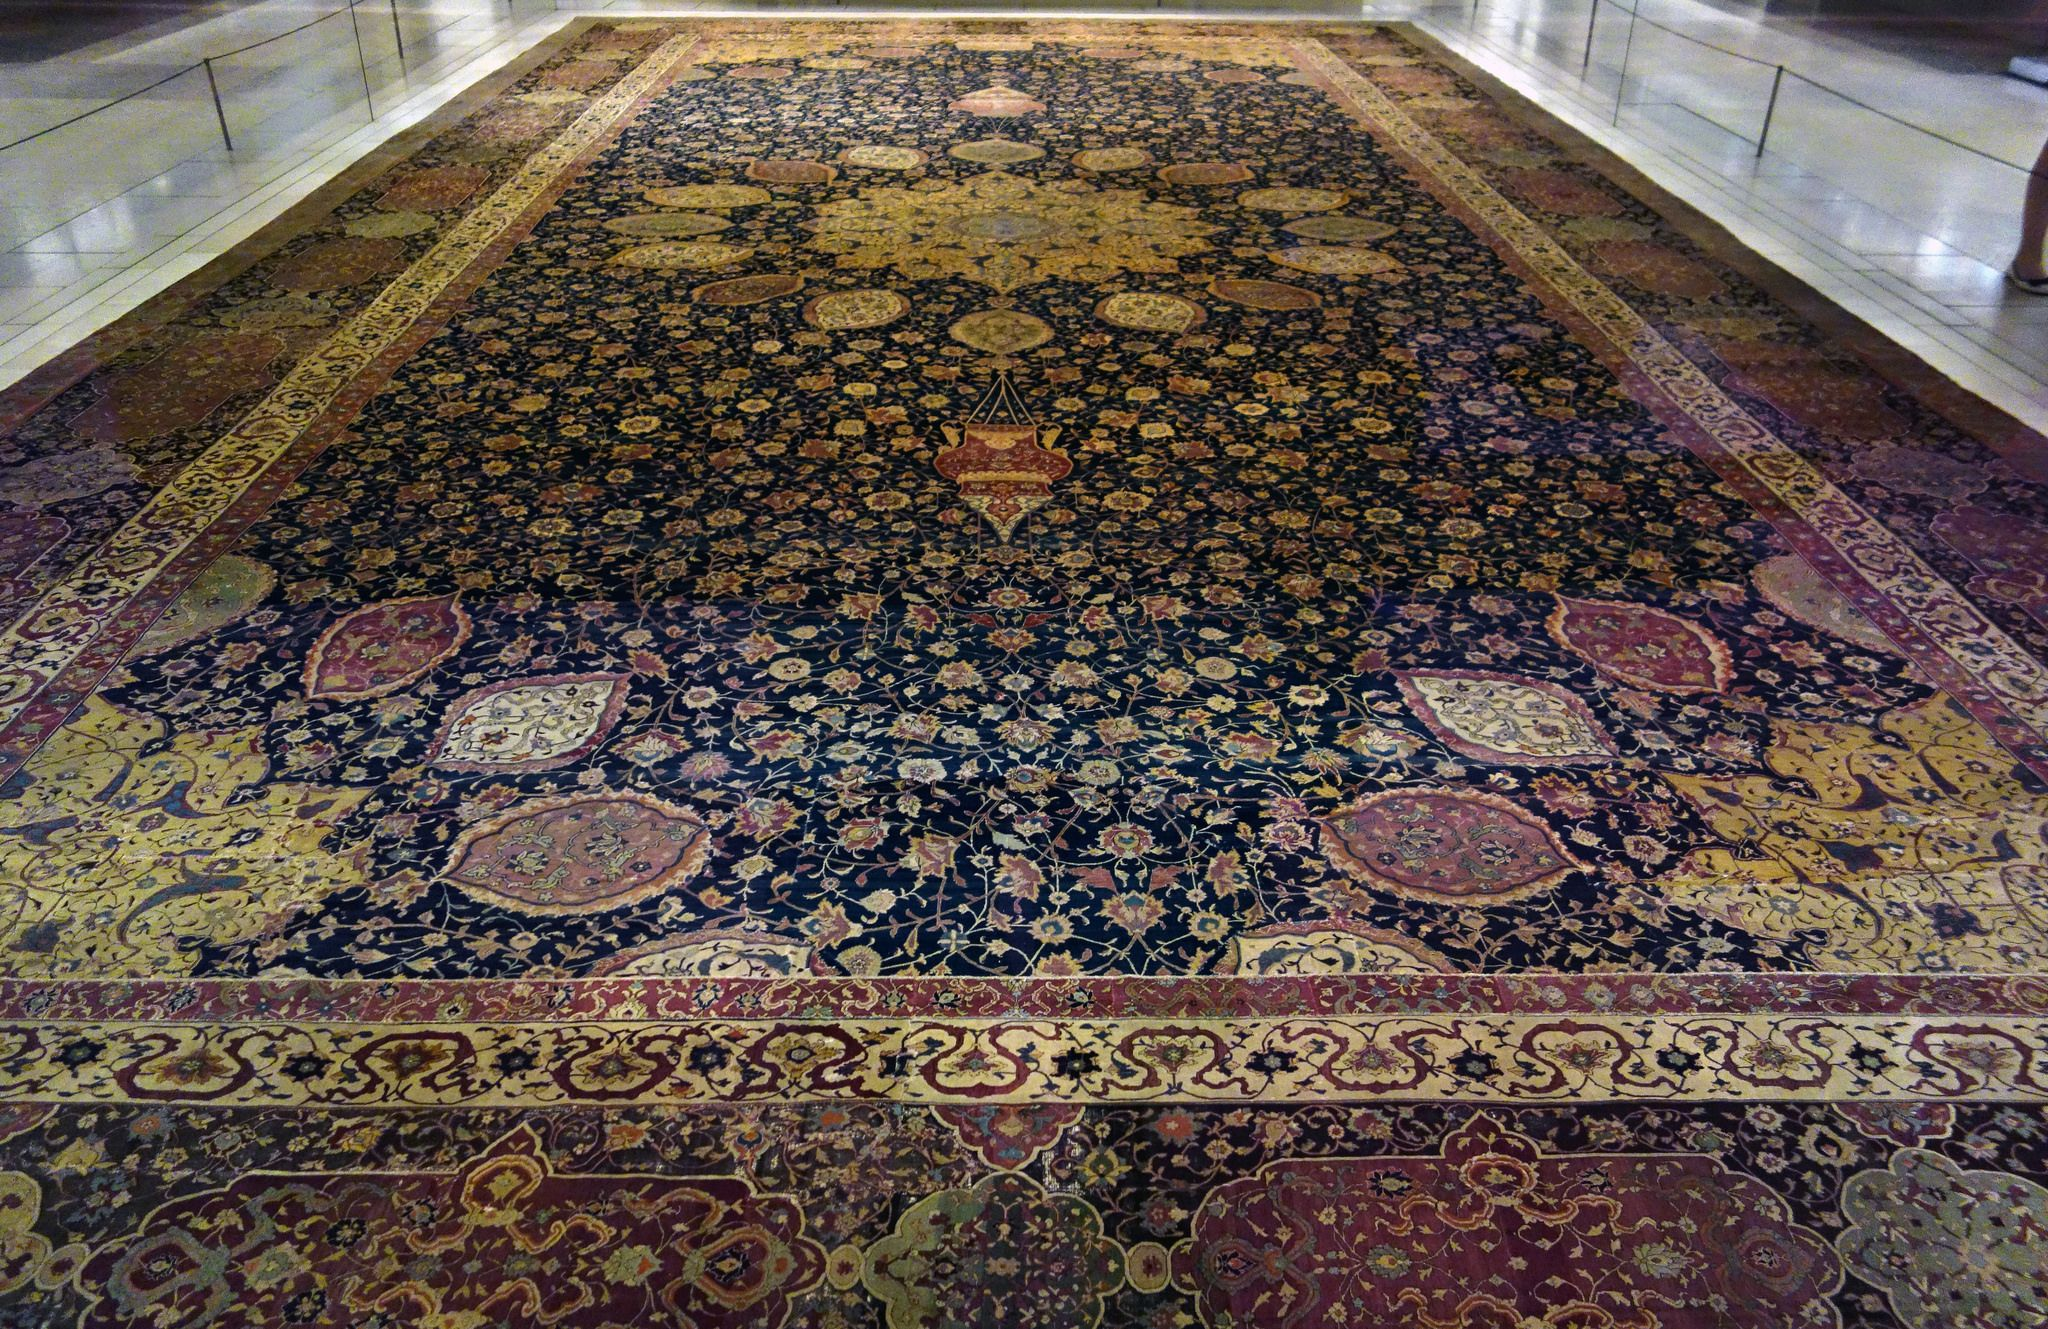 Medallion Carpet The Ardabil Carpet Unknown Artist Maqsud Kashani Is Named On The Carpet S Inscription Persian Safavid Dyna Carpet Persian Rugs On Carpet